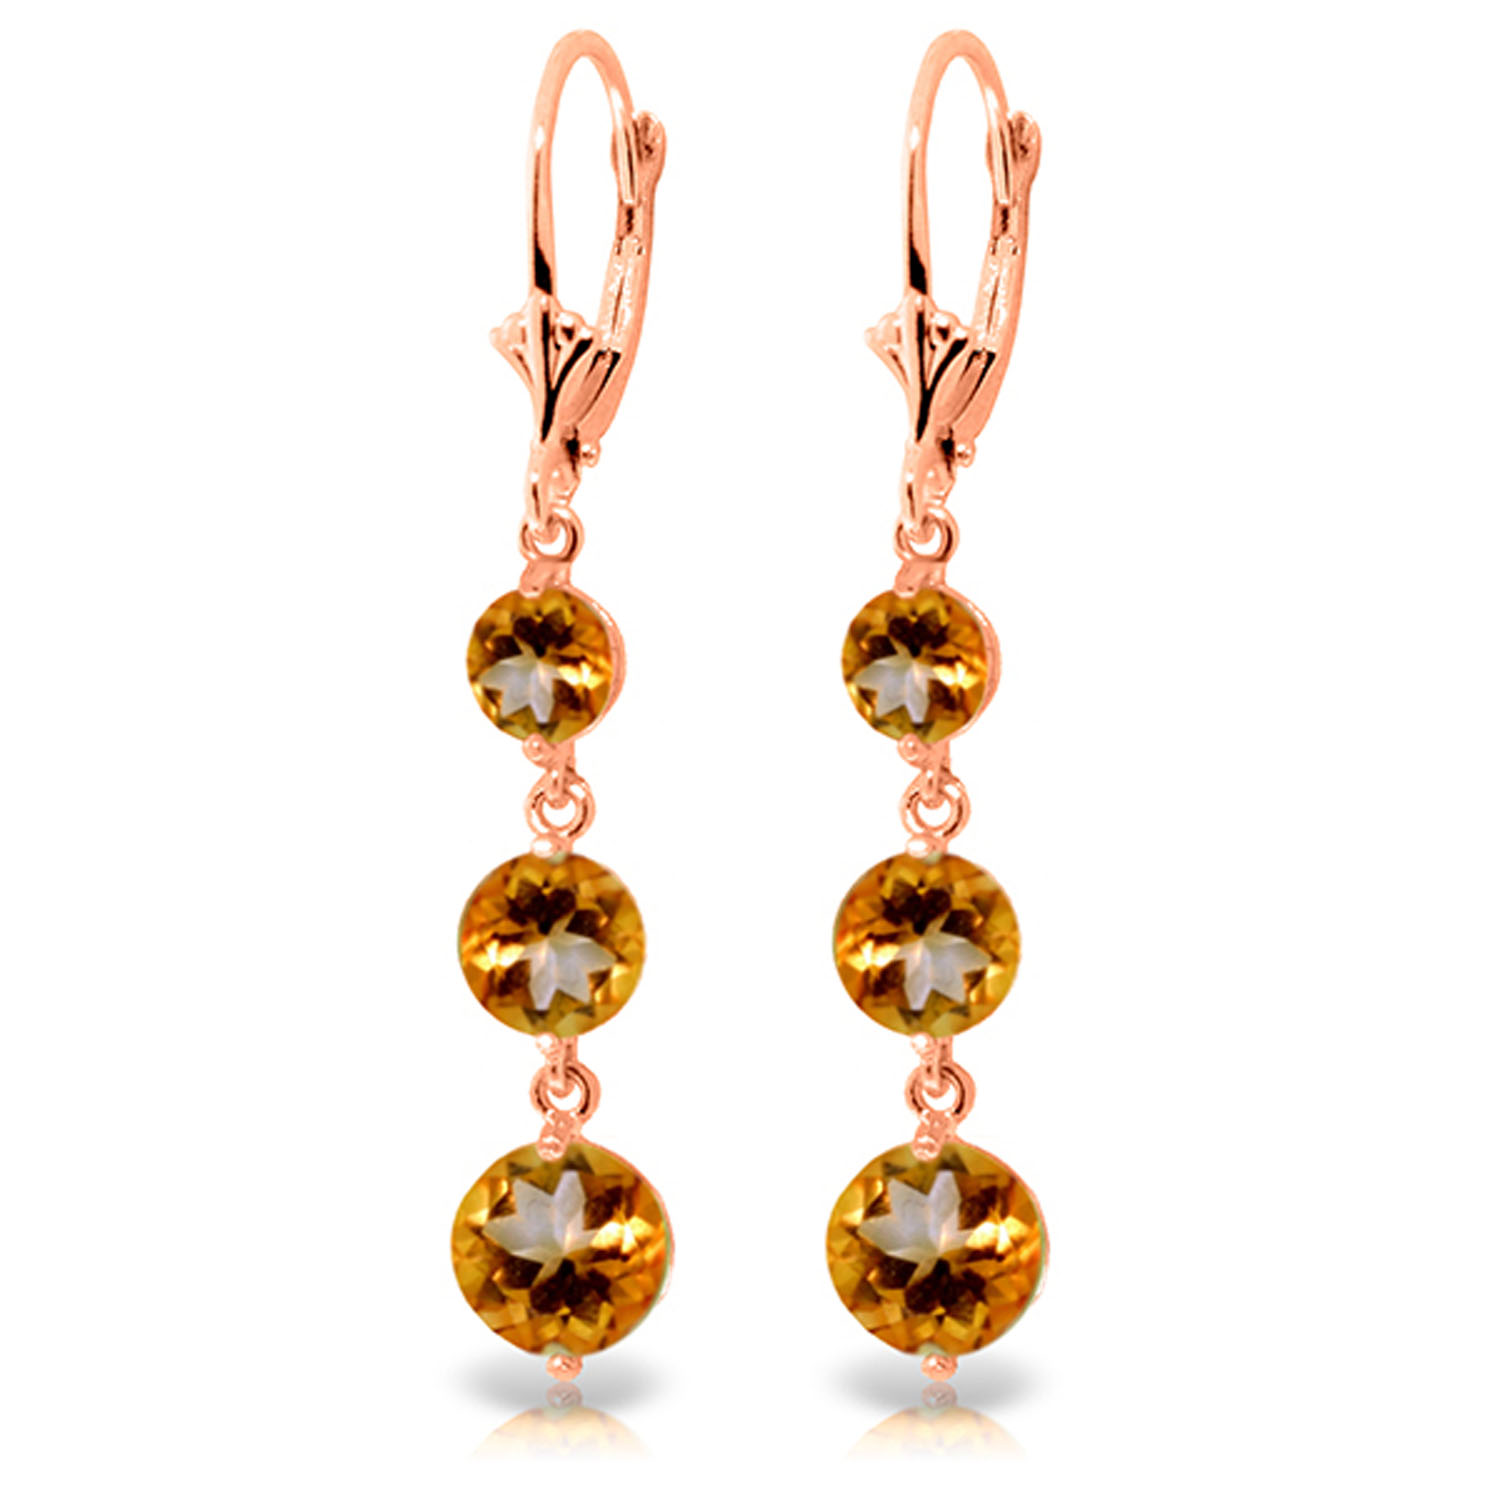 7 2 Carat 14K Solid Rose Gold Chandelier Earrings Citrine